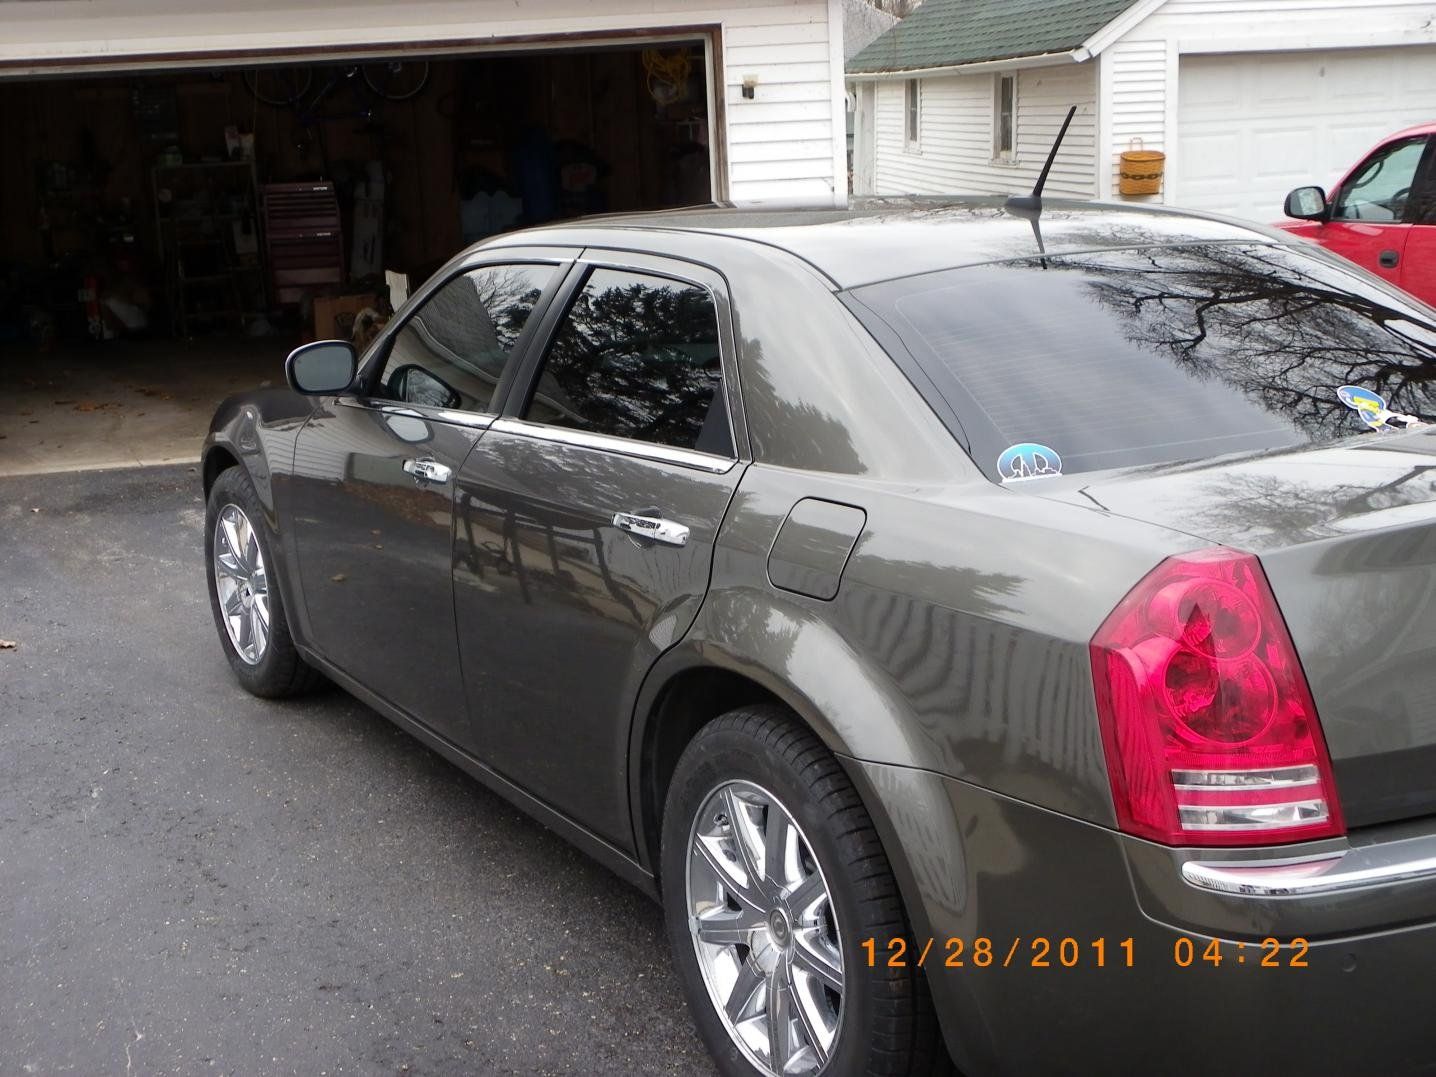 Cee Bbc B D Ad E Ef A Fe moreover D C New American Racing Torque Thrust M Img further Bc E F A A C A F Orlando Chrysler Pt Cruiser moreover D S Window Tint Question Issue Img moreover Chrysler Fatchance Lowered. on chrysler 300 window tint